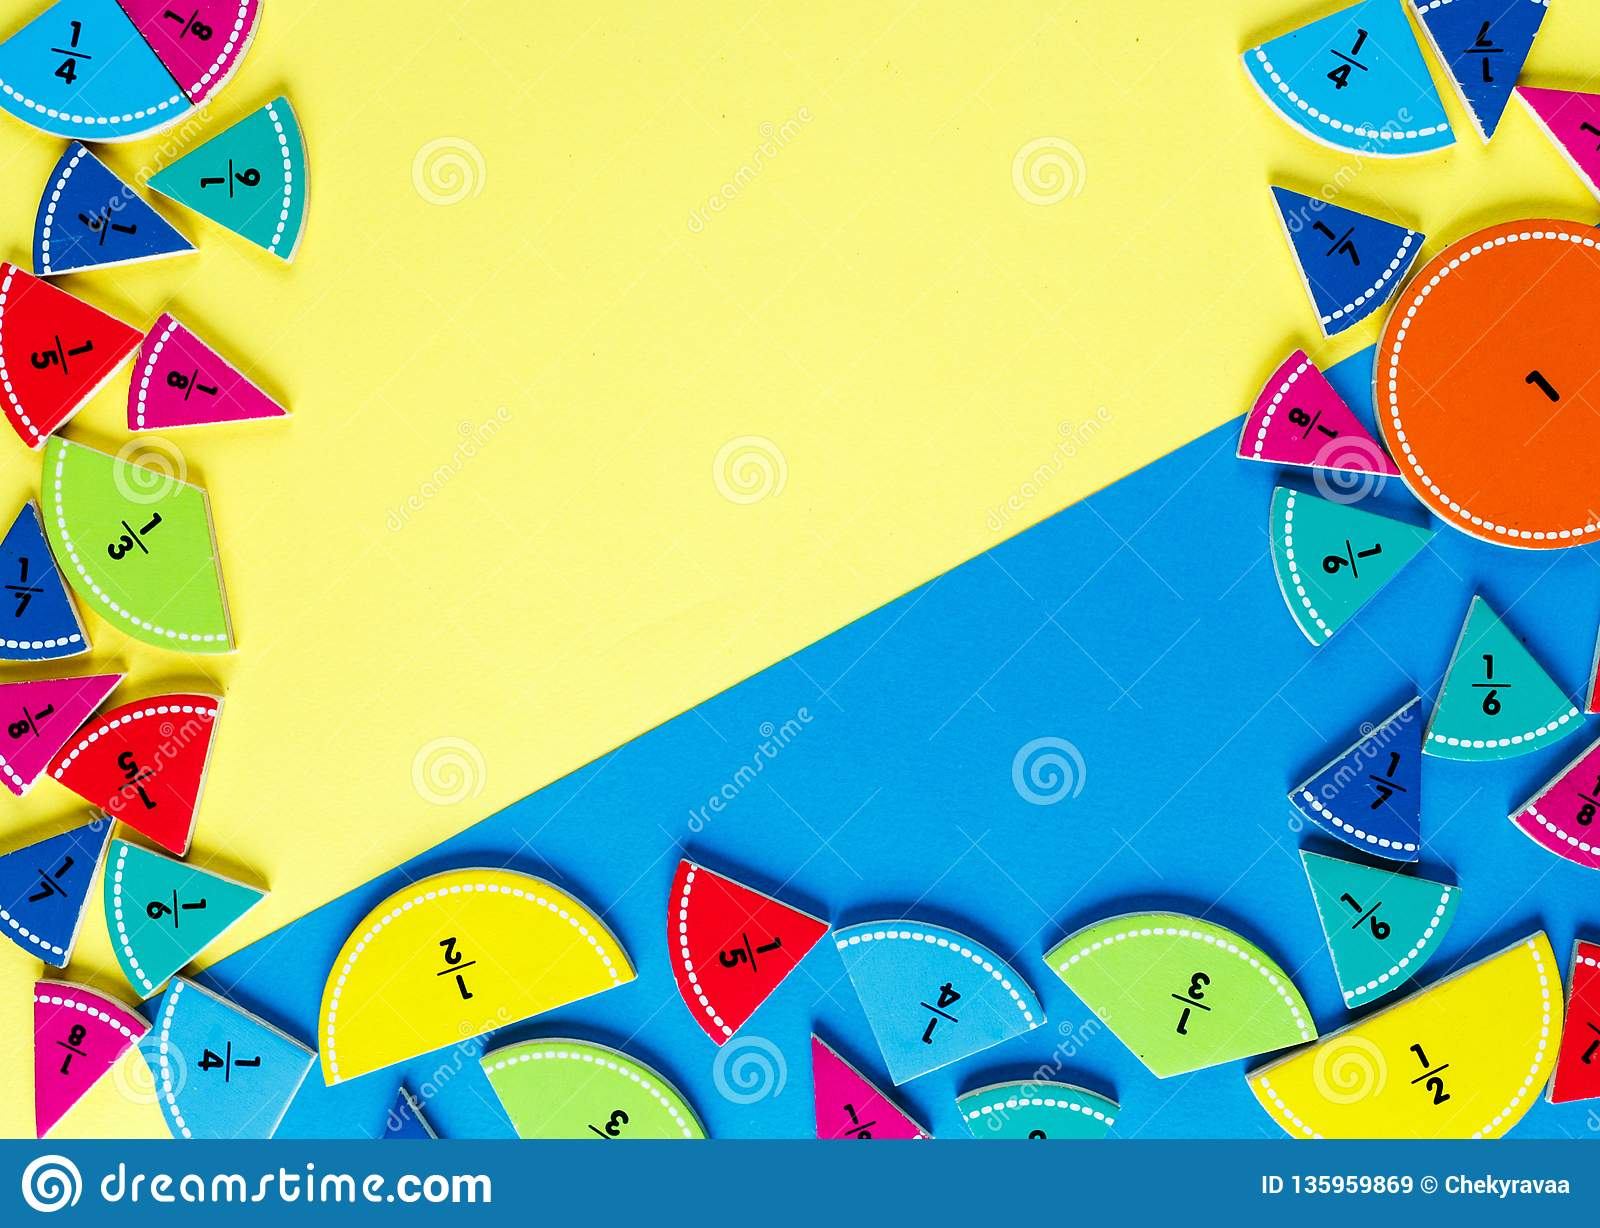 Colorful math fractions on the yellow and blue bright backgrounds. interesting math for kids. Education, back to school concept. G